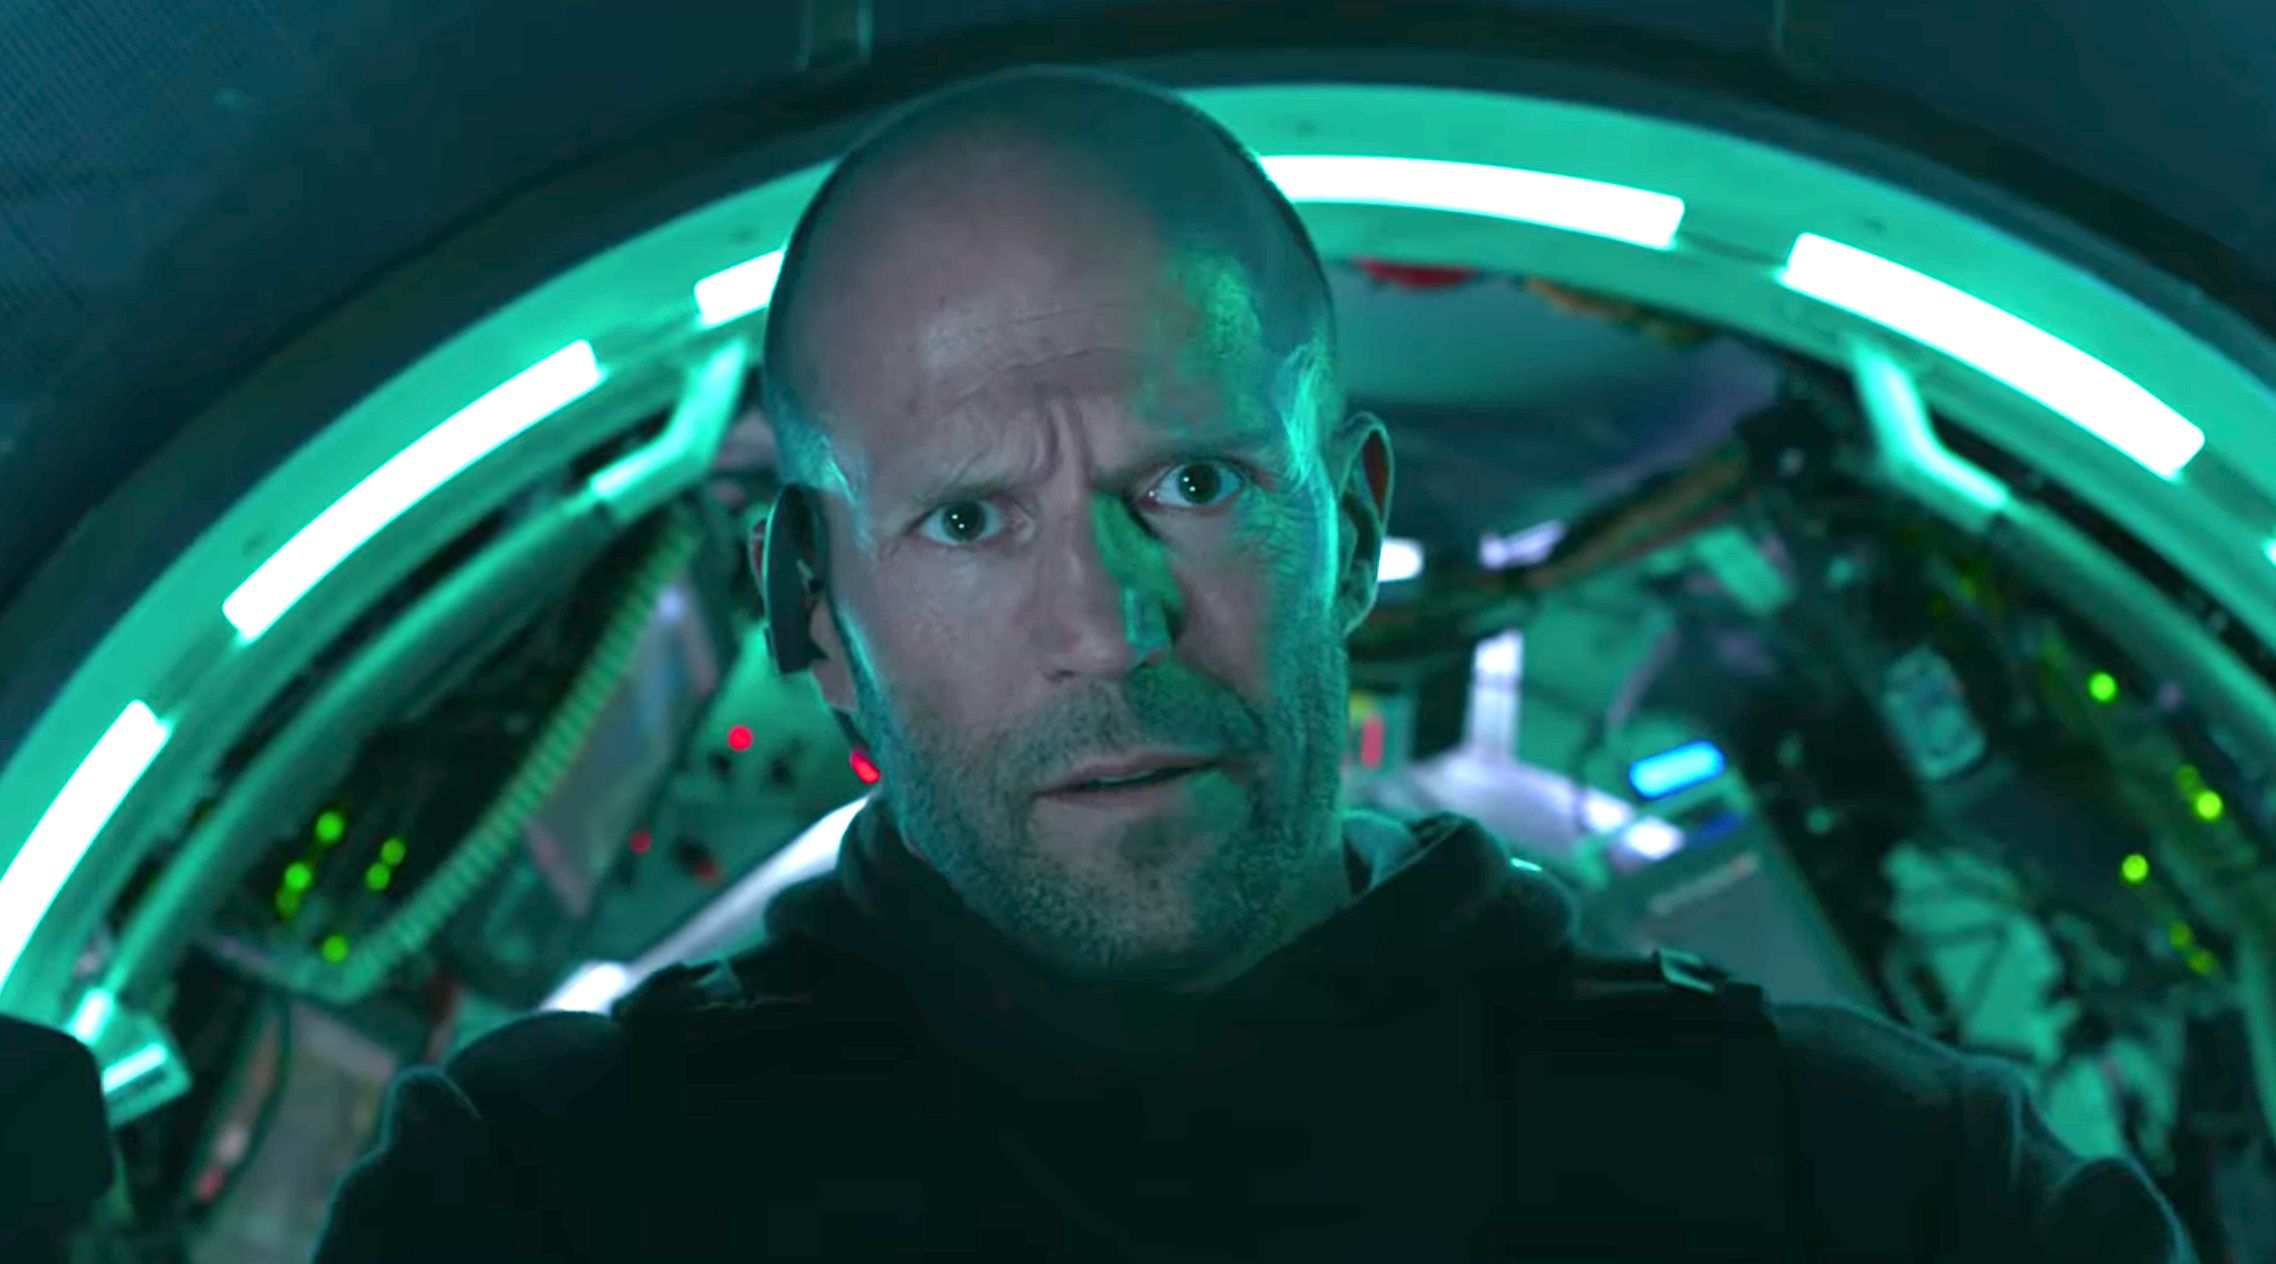 Jason Stathem in The Meg